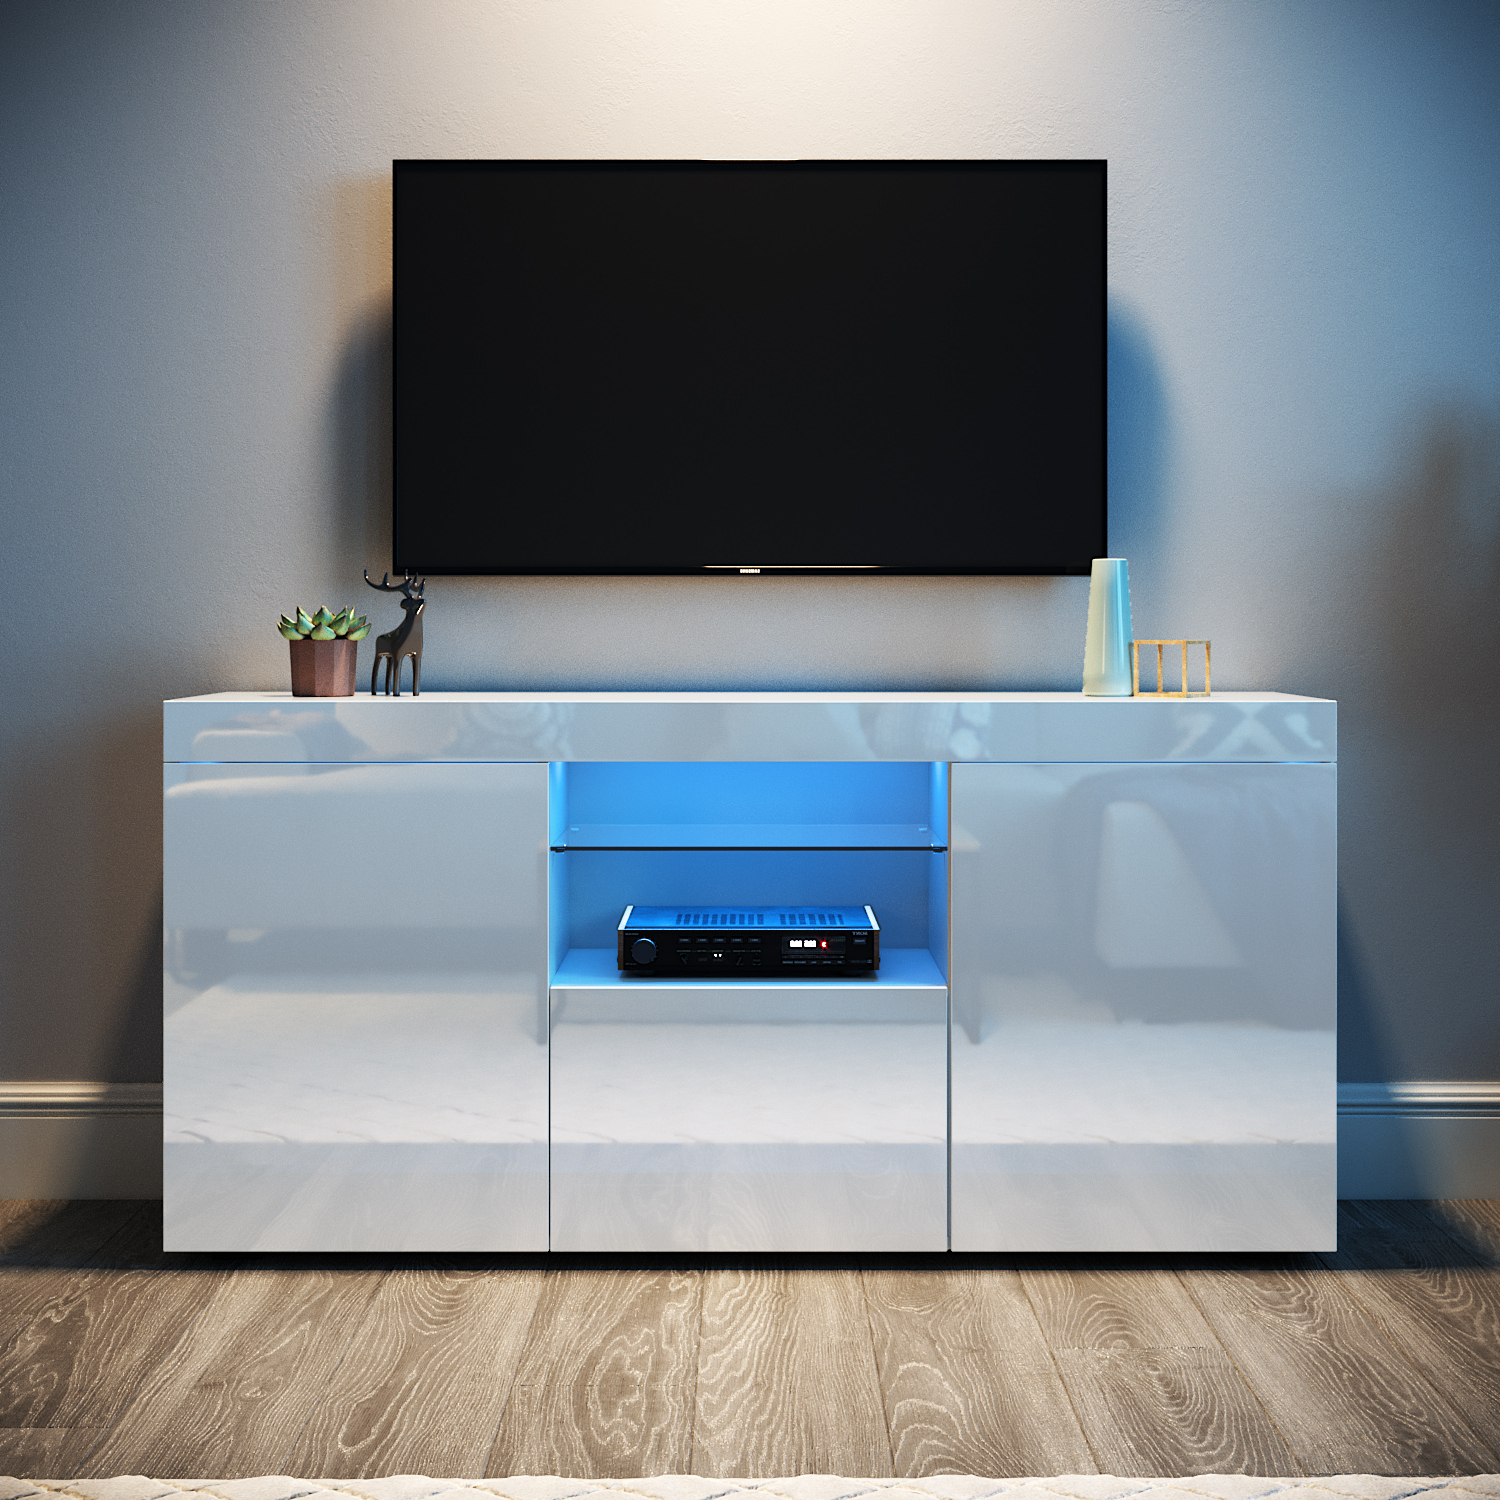 Modern Entertainment Unit Tv Stand White Cabinet High Regarding Tv Stands Cabinet Media Console Shelves 2 Drawers With Led Light (View 1 of 20)